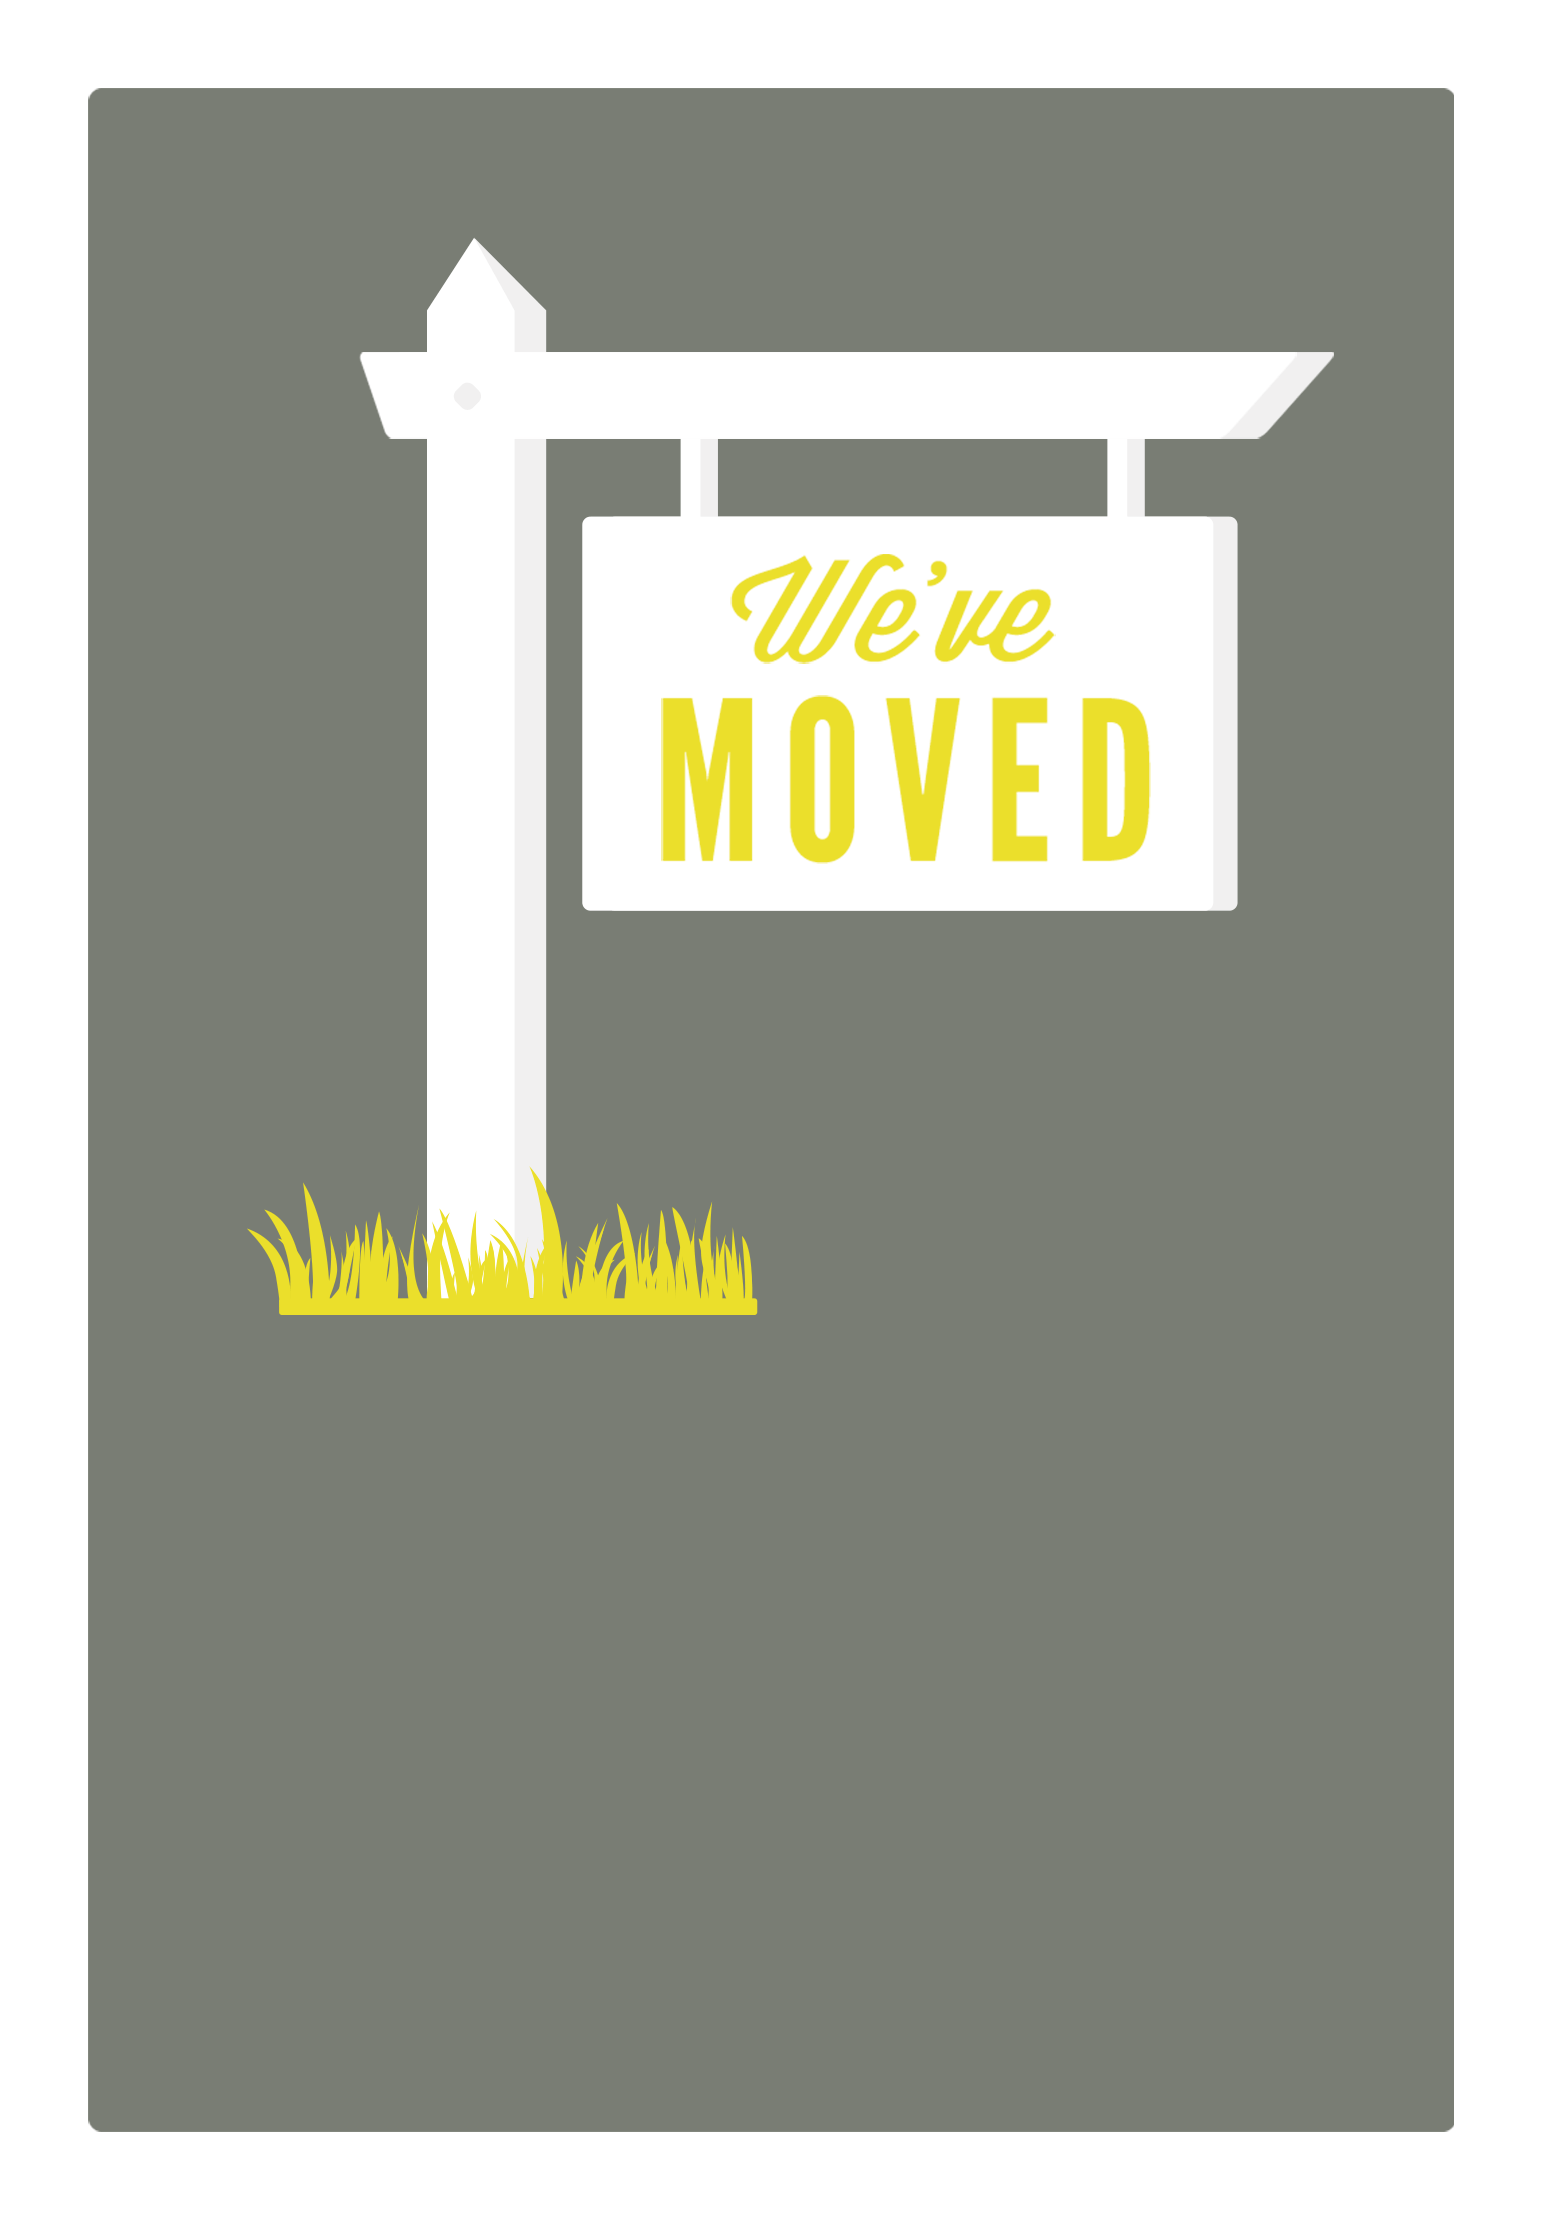 Moving Announcement Template Free